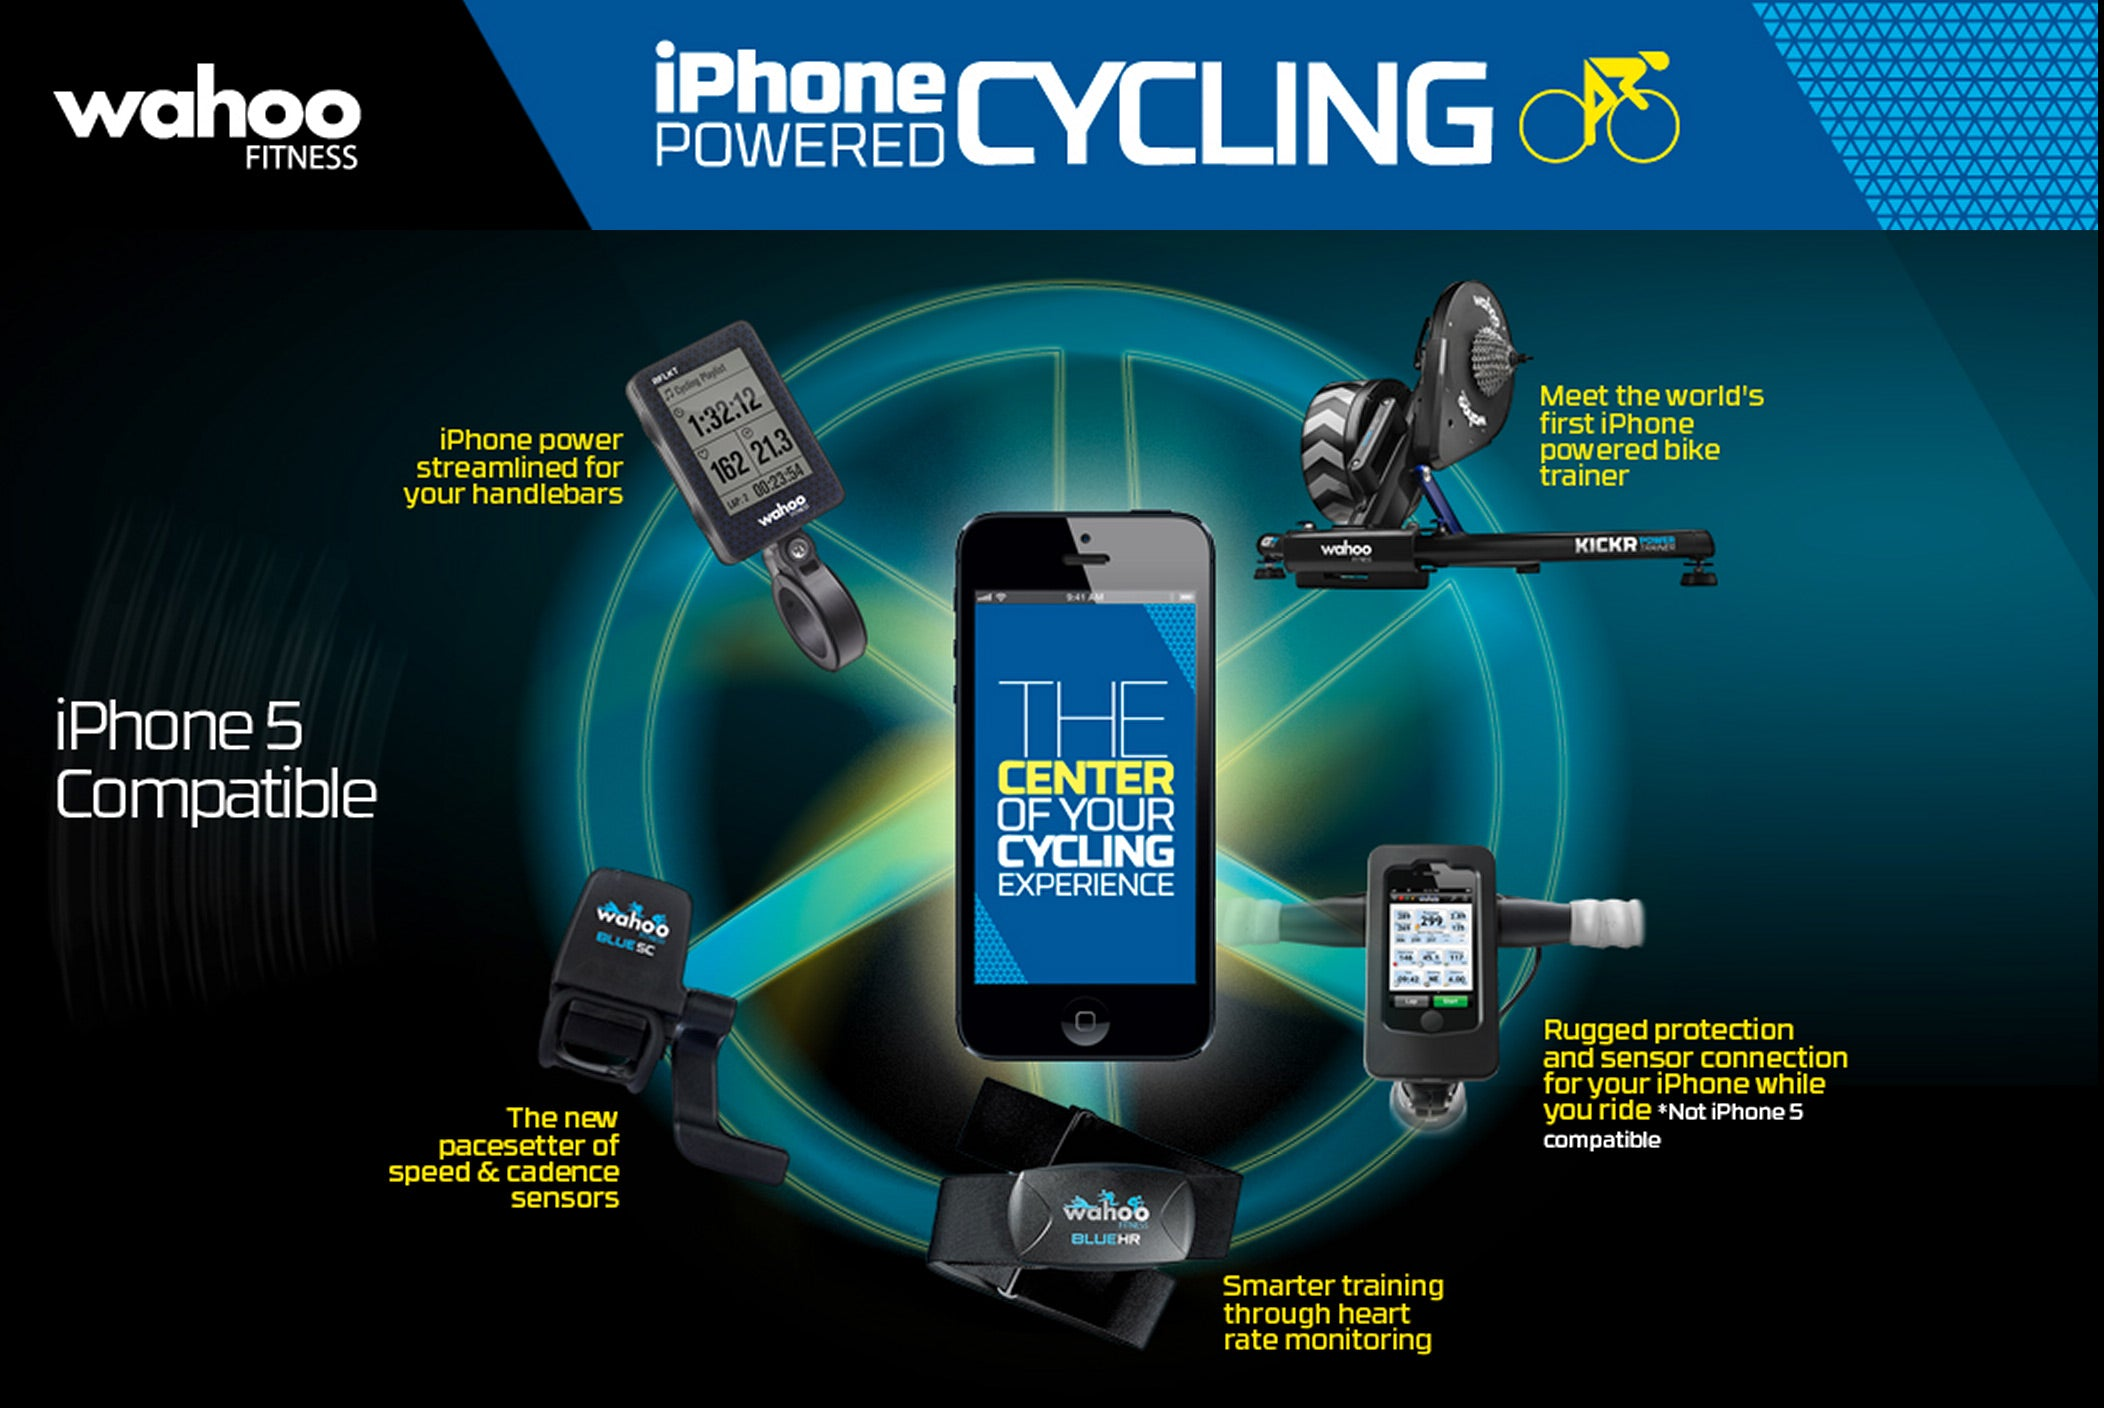 iPhone Powered Cycling